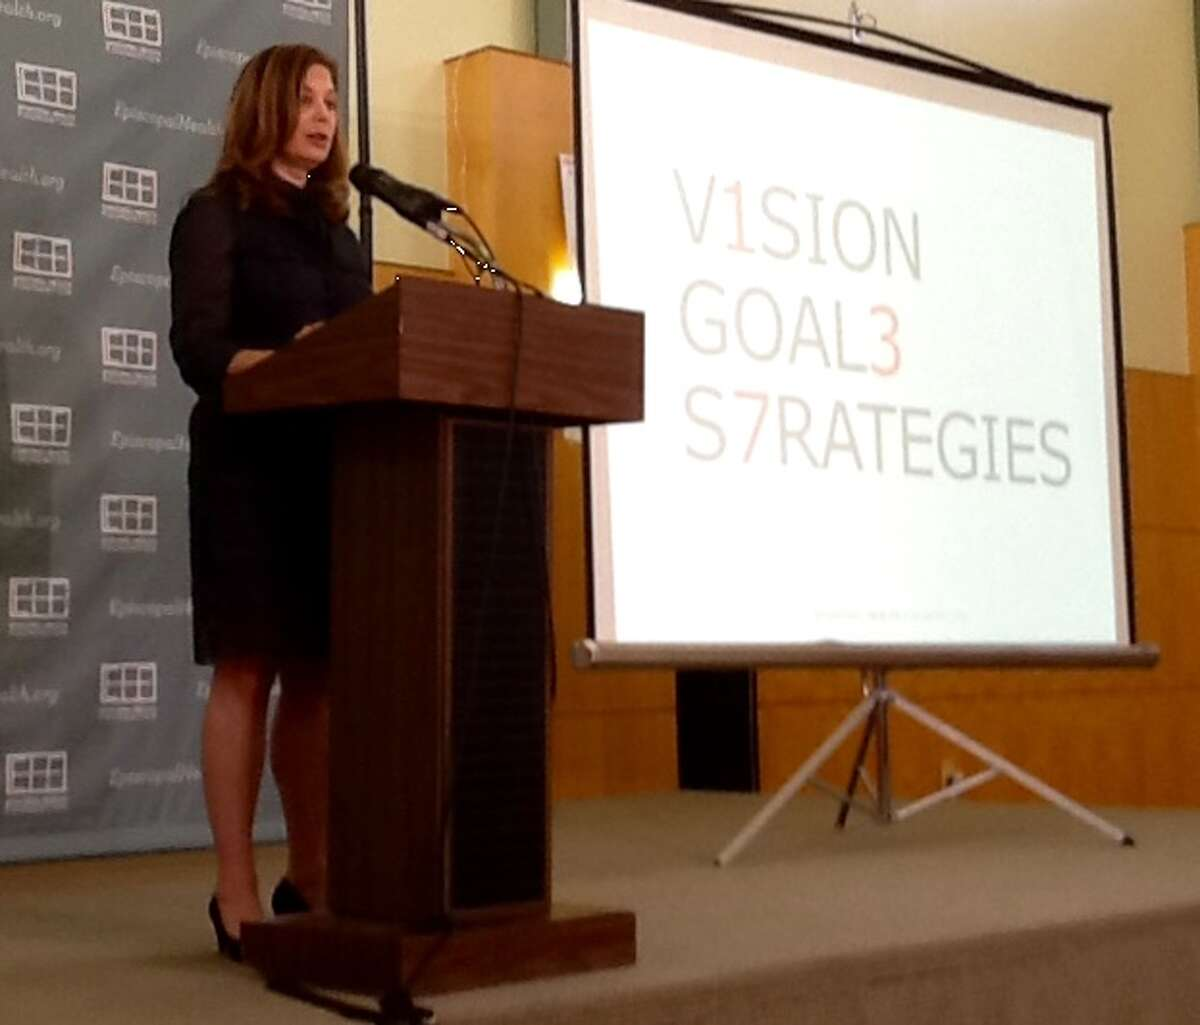 Elena Marks, president and CEO of the Episcopal Health Foundation, explains the organization's funding goals and strategies during a Wednesday news conference.